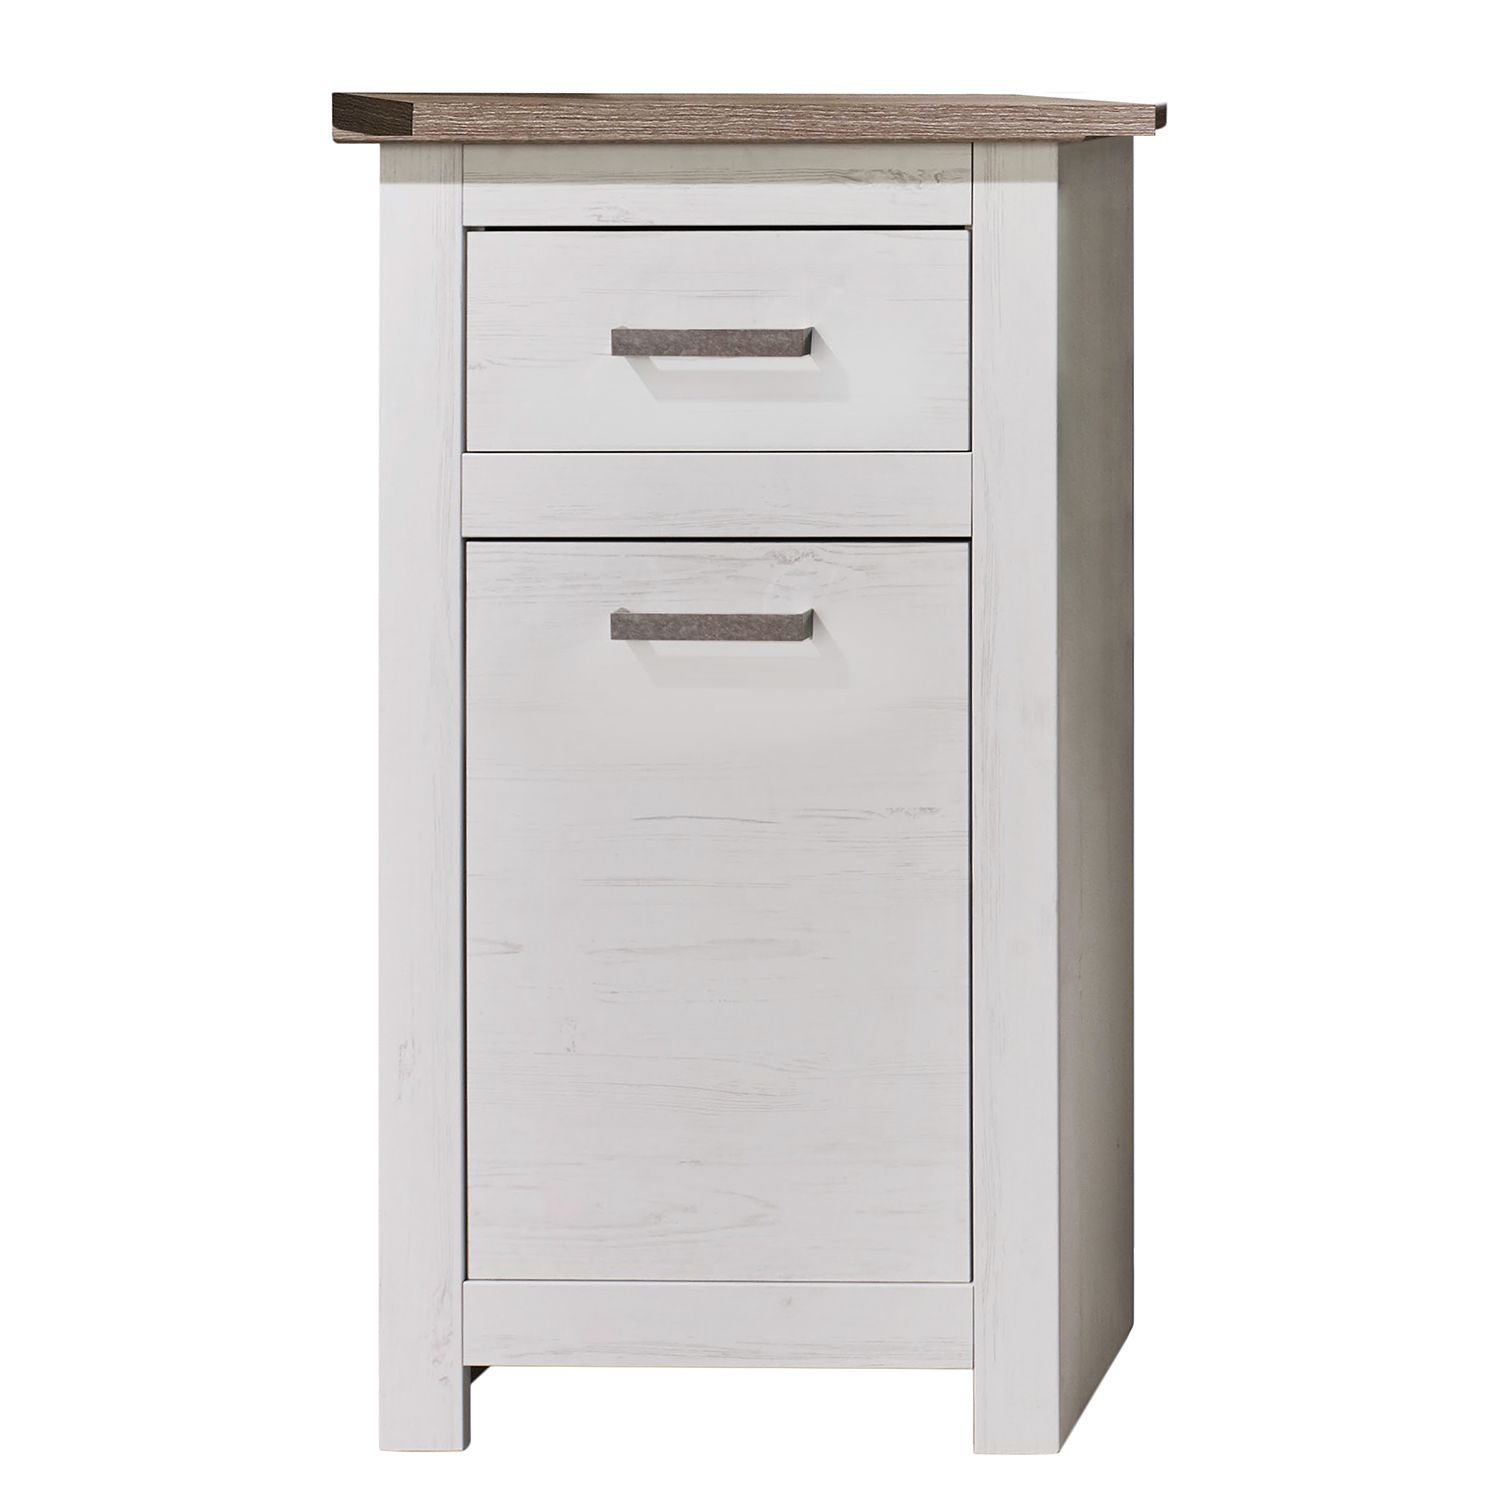 Armoire basse lotte imitation pin blanc imitation for Armoire basse chambre adulte